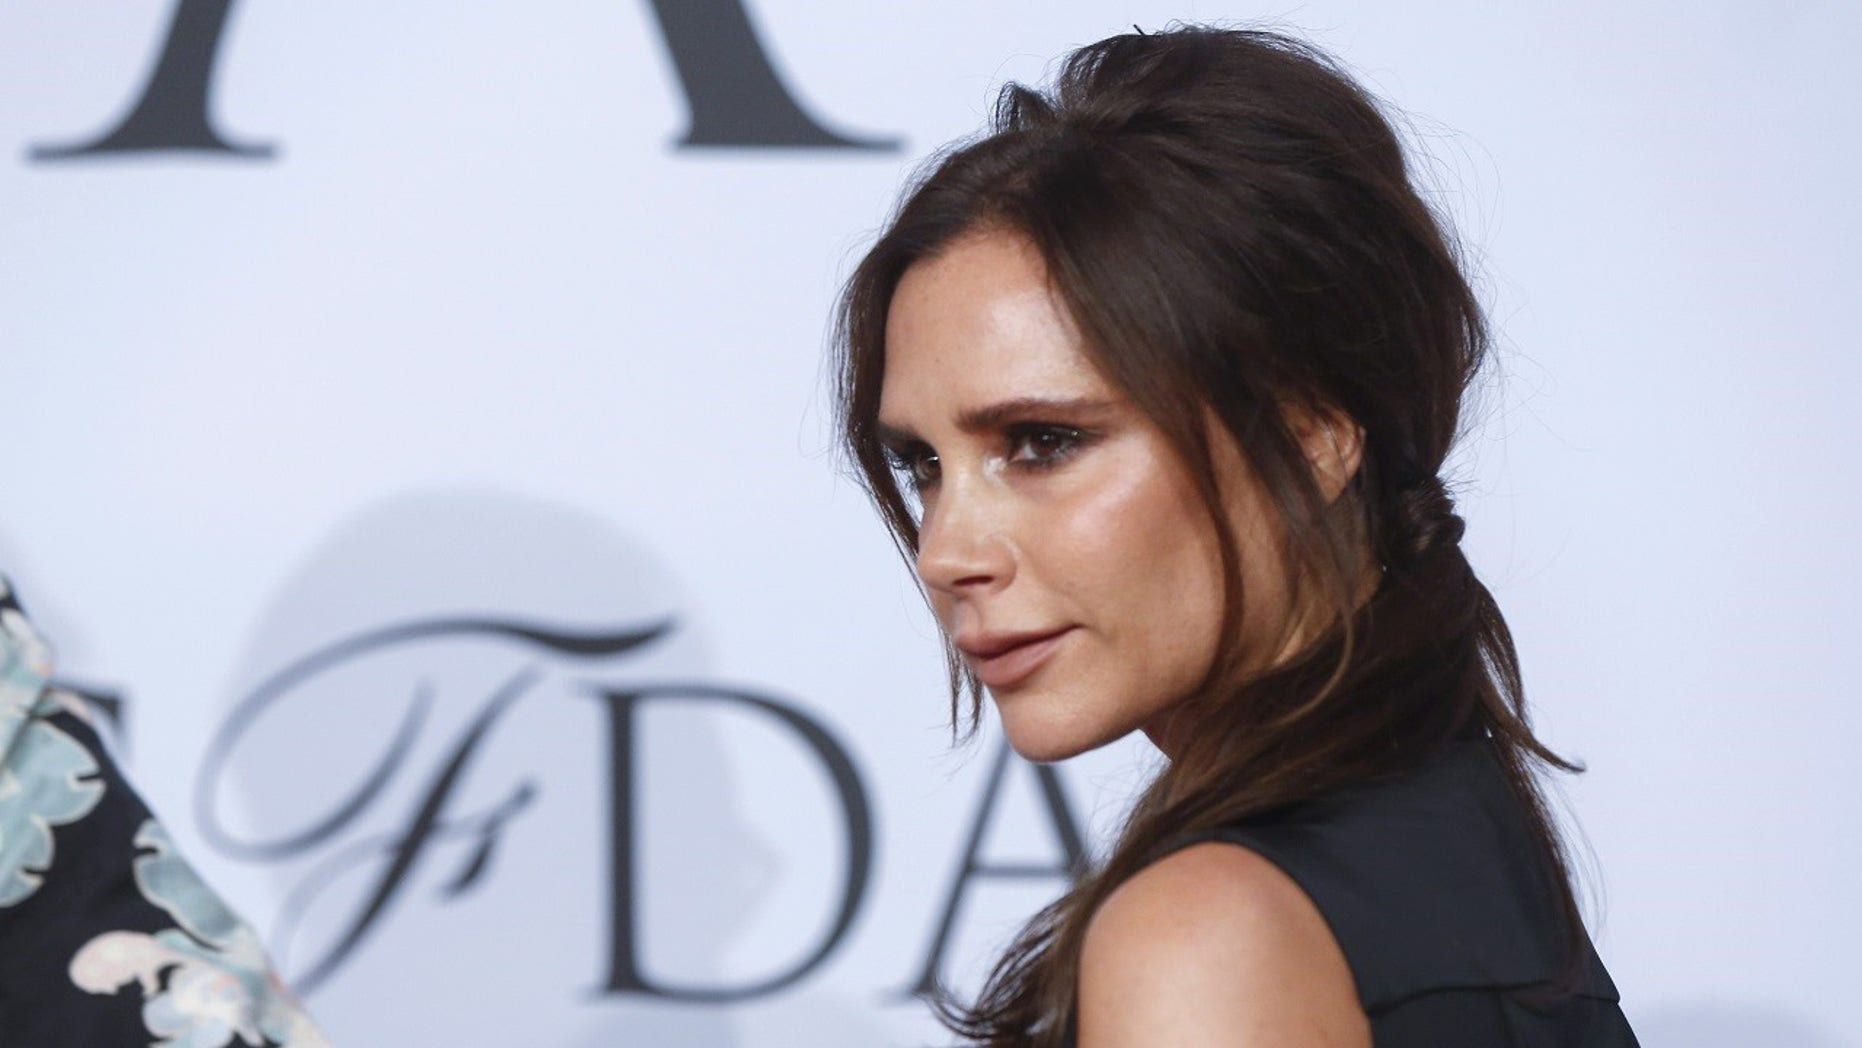 Victoria Beckham shut down Spice Girls reunion tour rumors on Saturday.